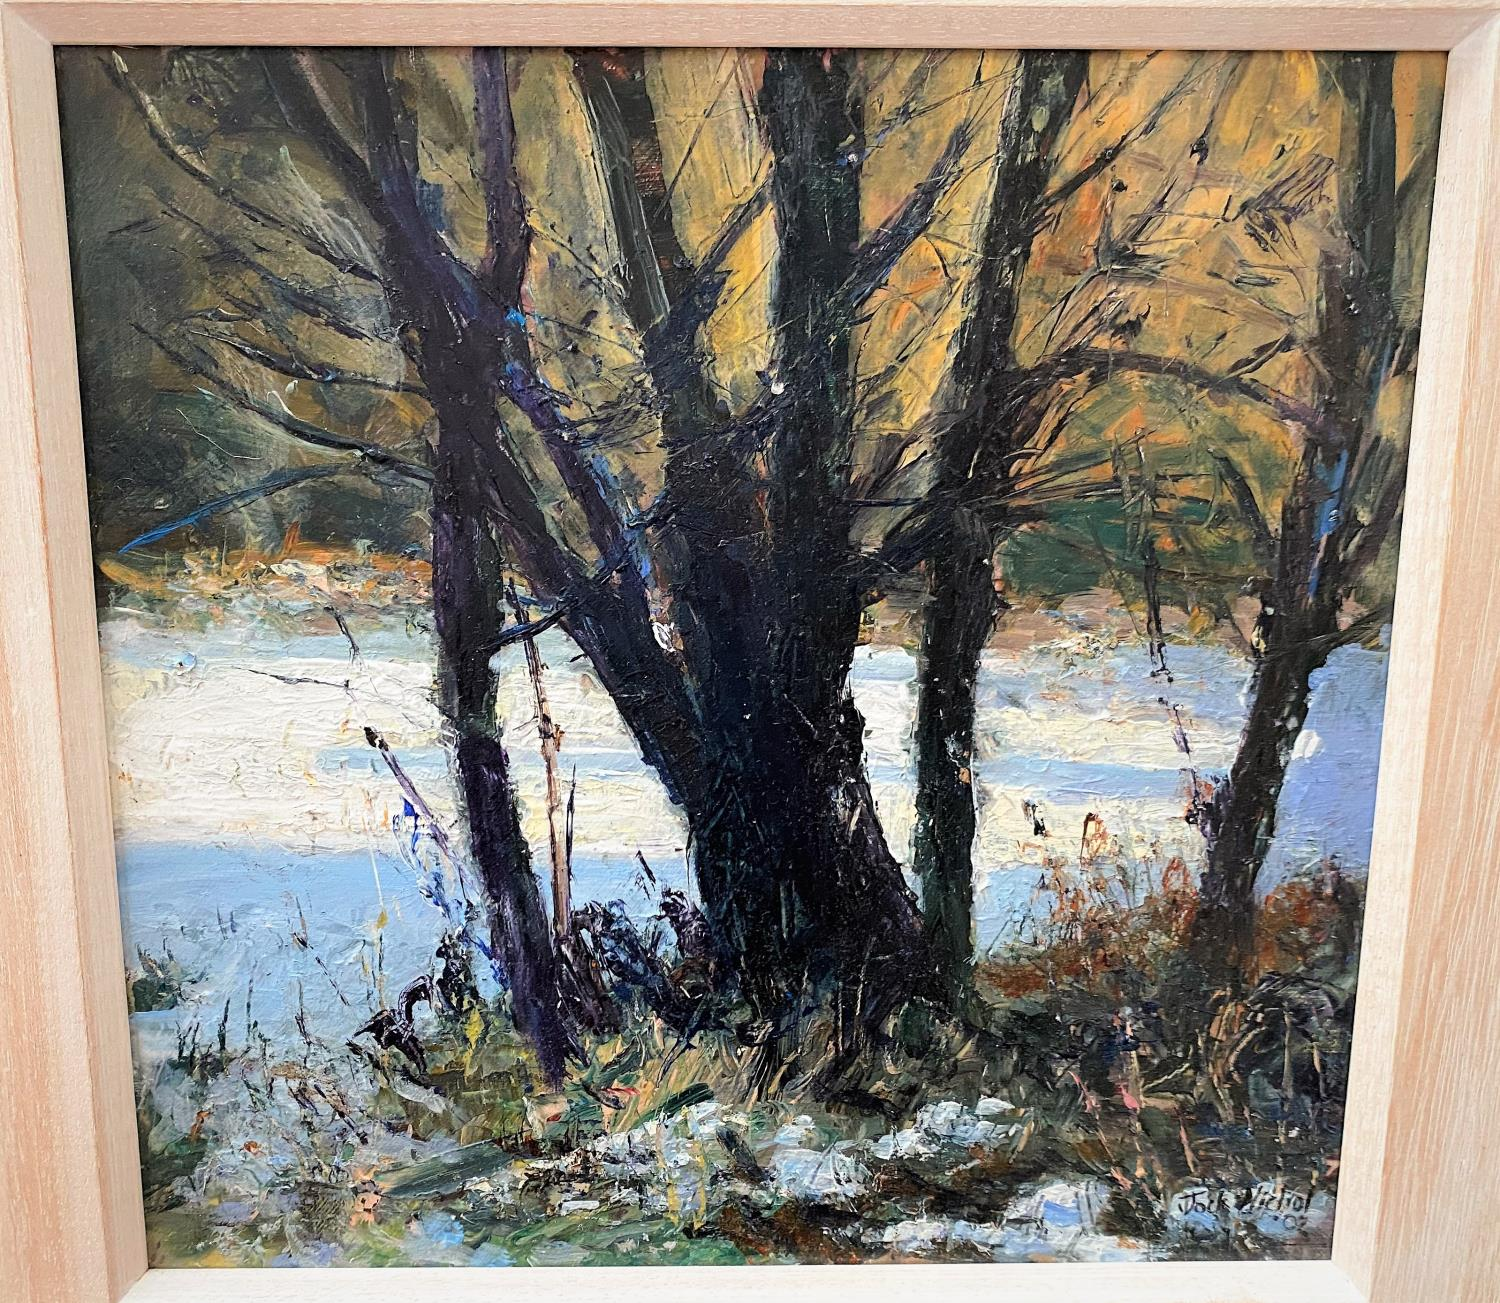 """Jock Nichol (1962) """"The Scent of Snow"""" Acrylic, signed. 30 x 29 cm framed (47 x 46cm overall) - Image 2 of 3"""